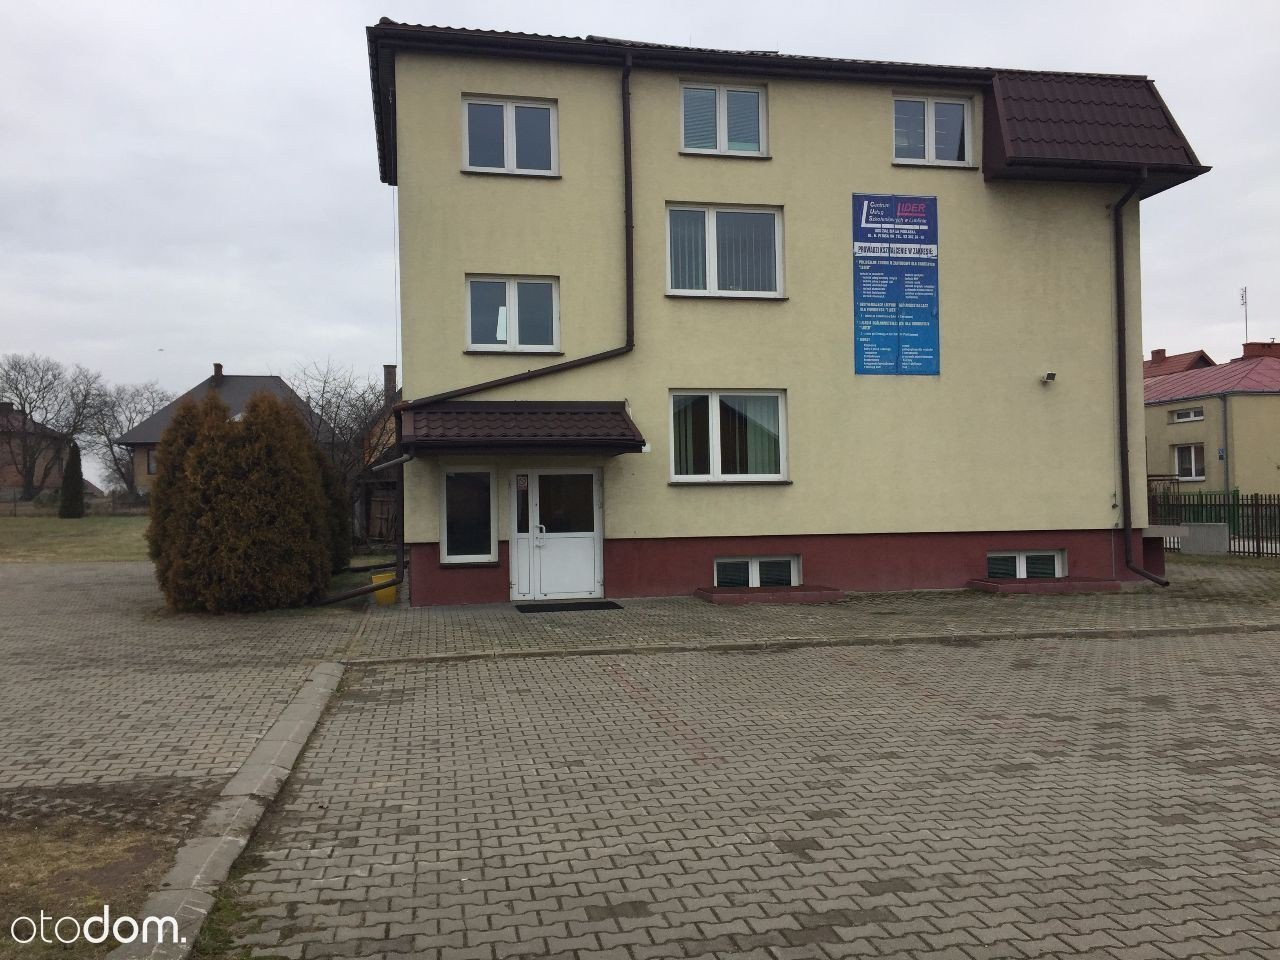 Sale property abroad Sale of land in Lublin